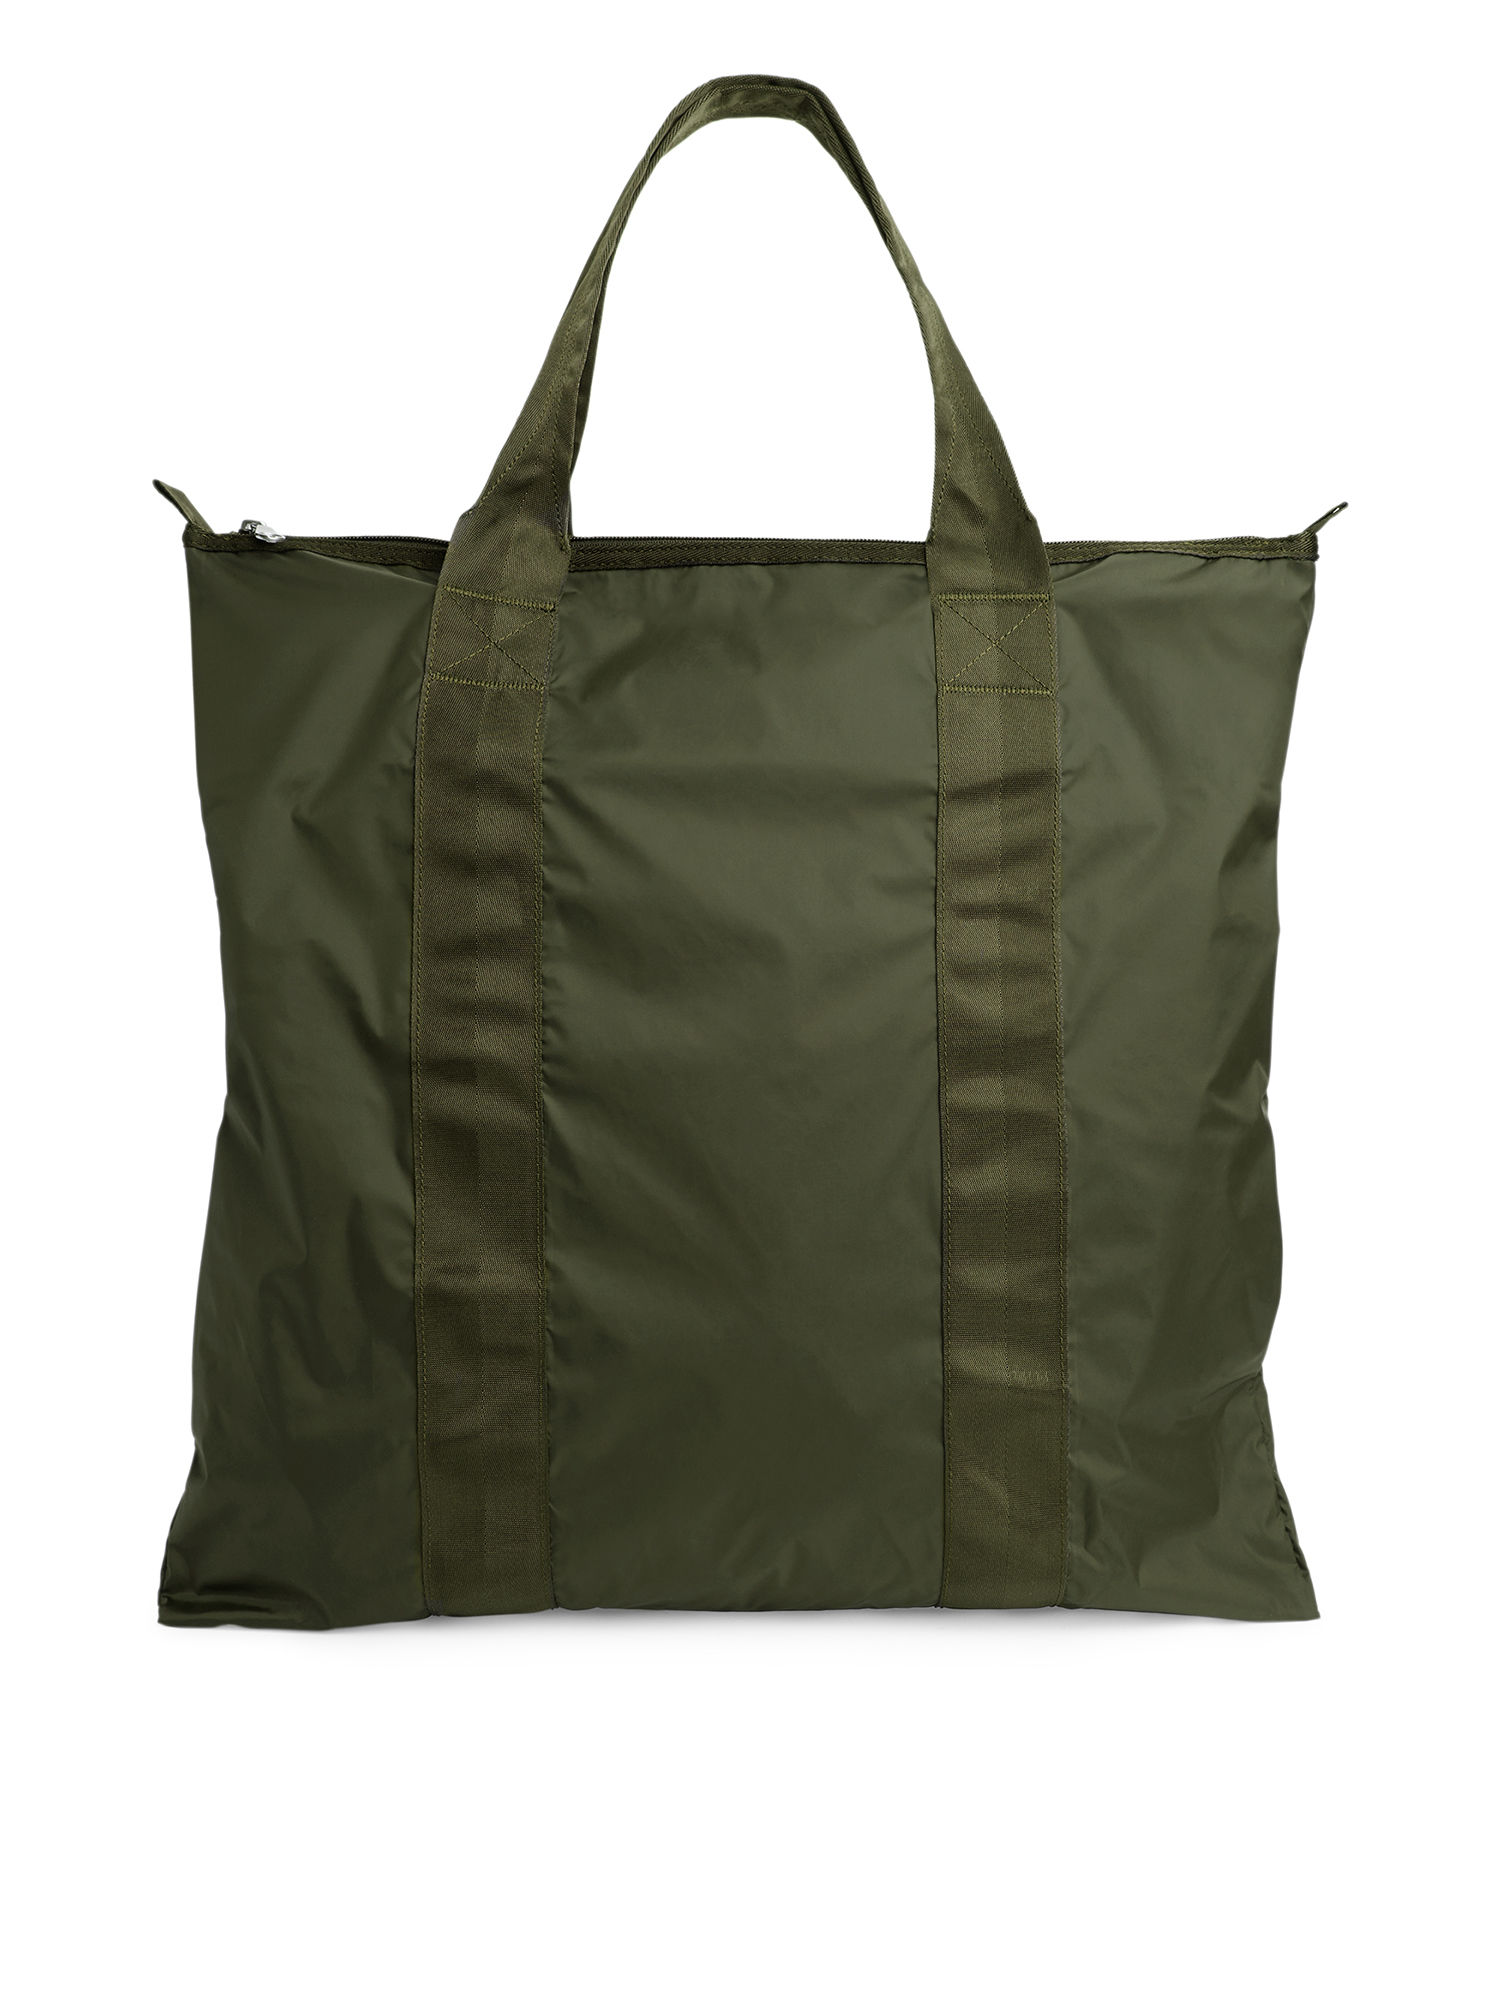 Fabric Swatch image of Arket packable tote in green